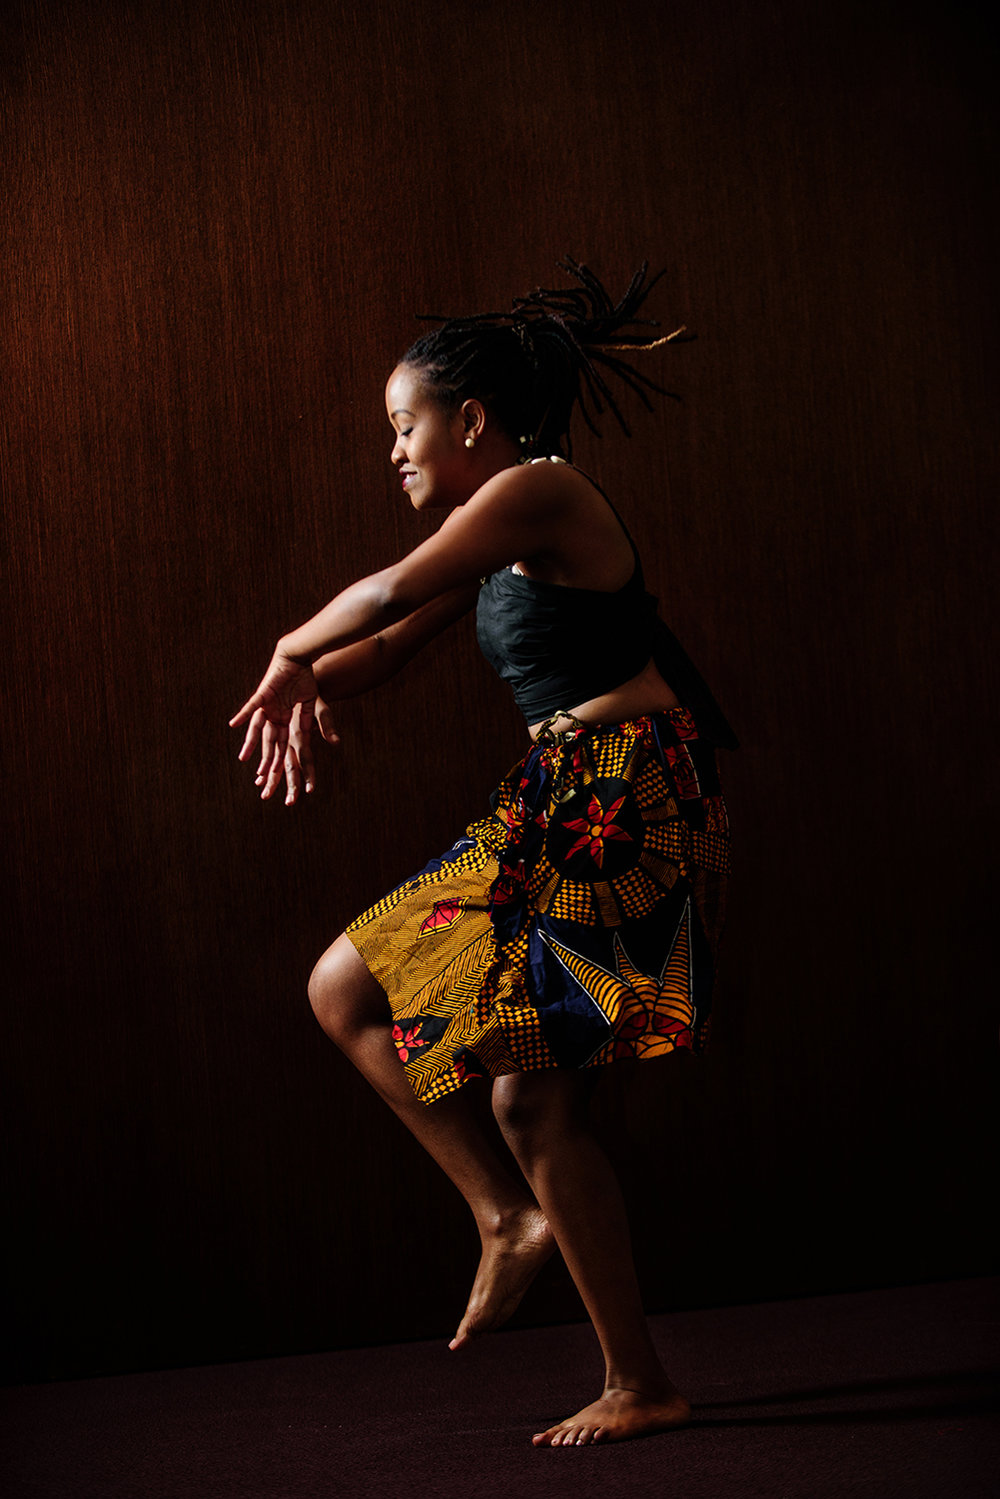 African Rhythms - at the Philadelphia Museum of Art...